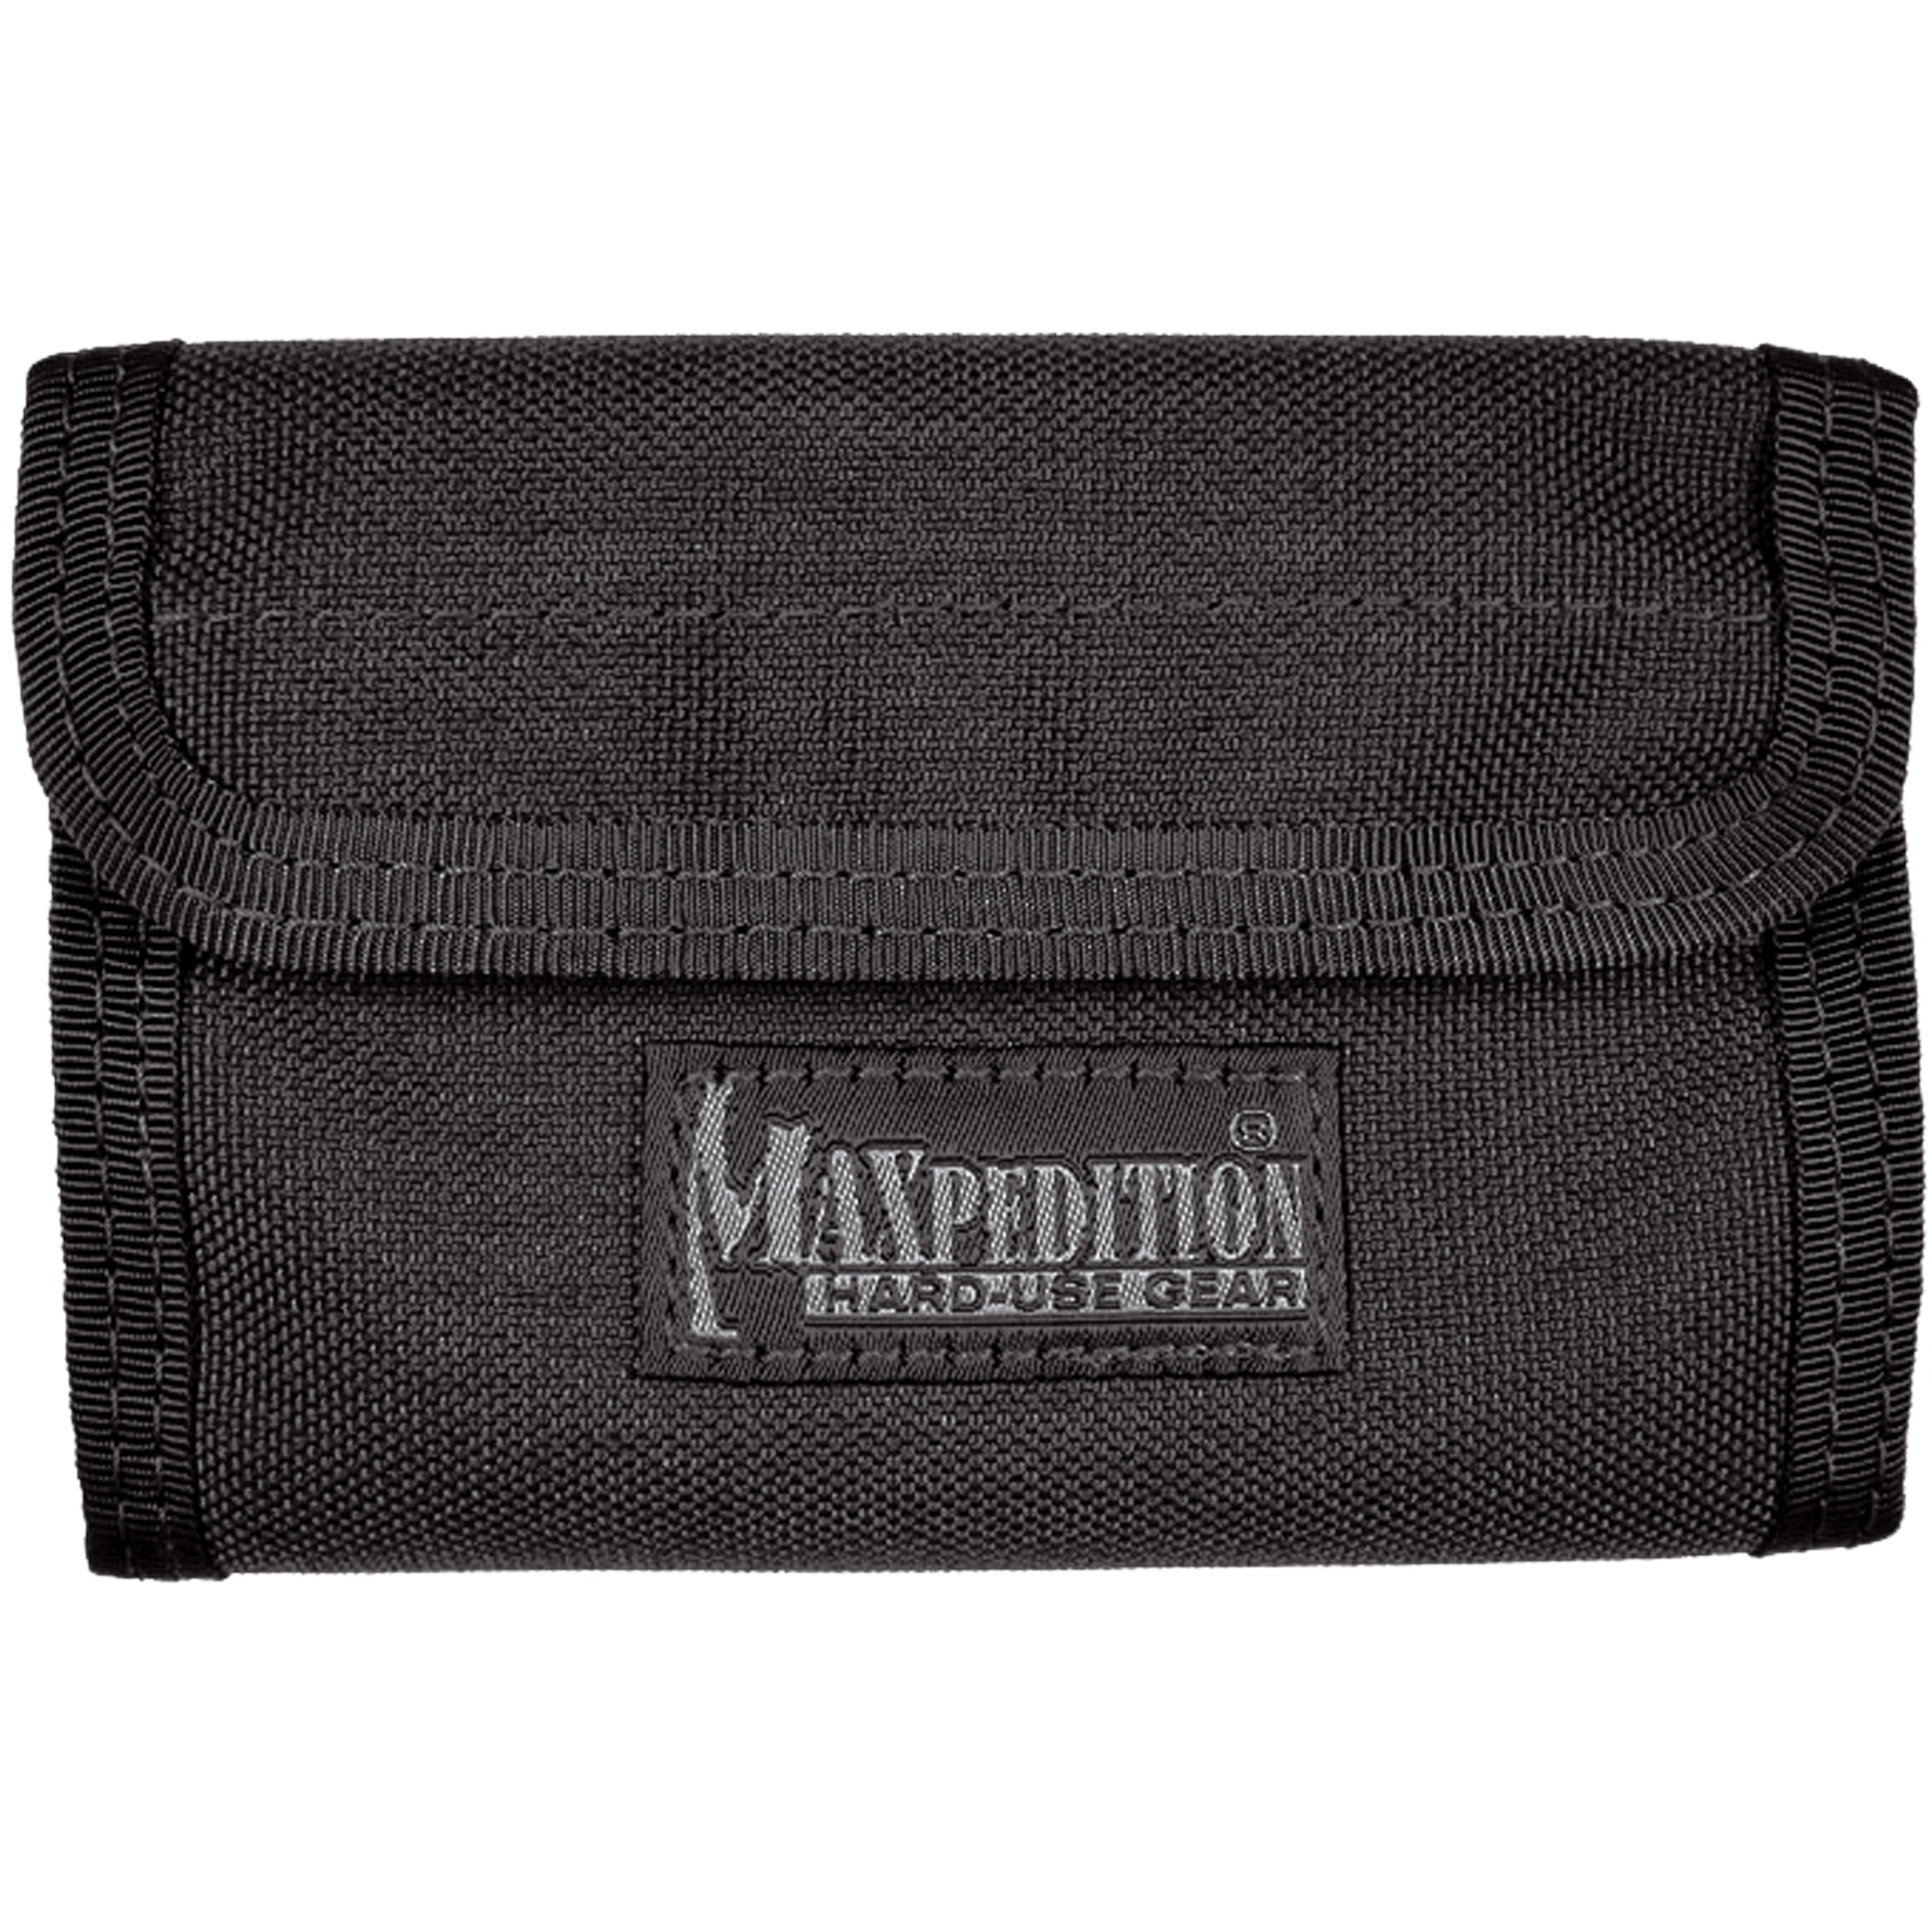 The Spartan Wallet is a general purpose folding wallet that protects items from slipping. The wallet contains a plethora of small compartments secured with Hook & Loop tabs to prevent slippage. Two longer slots for paper bills make carrying multiple currency types easy. An external mesh pocket is great for quick access to ticket stubs or to separate receipts.